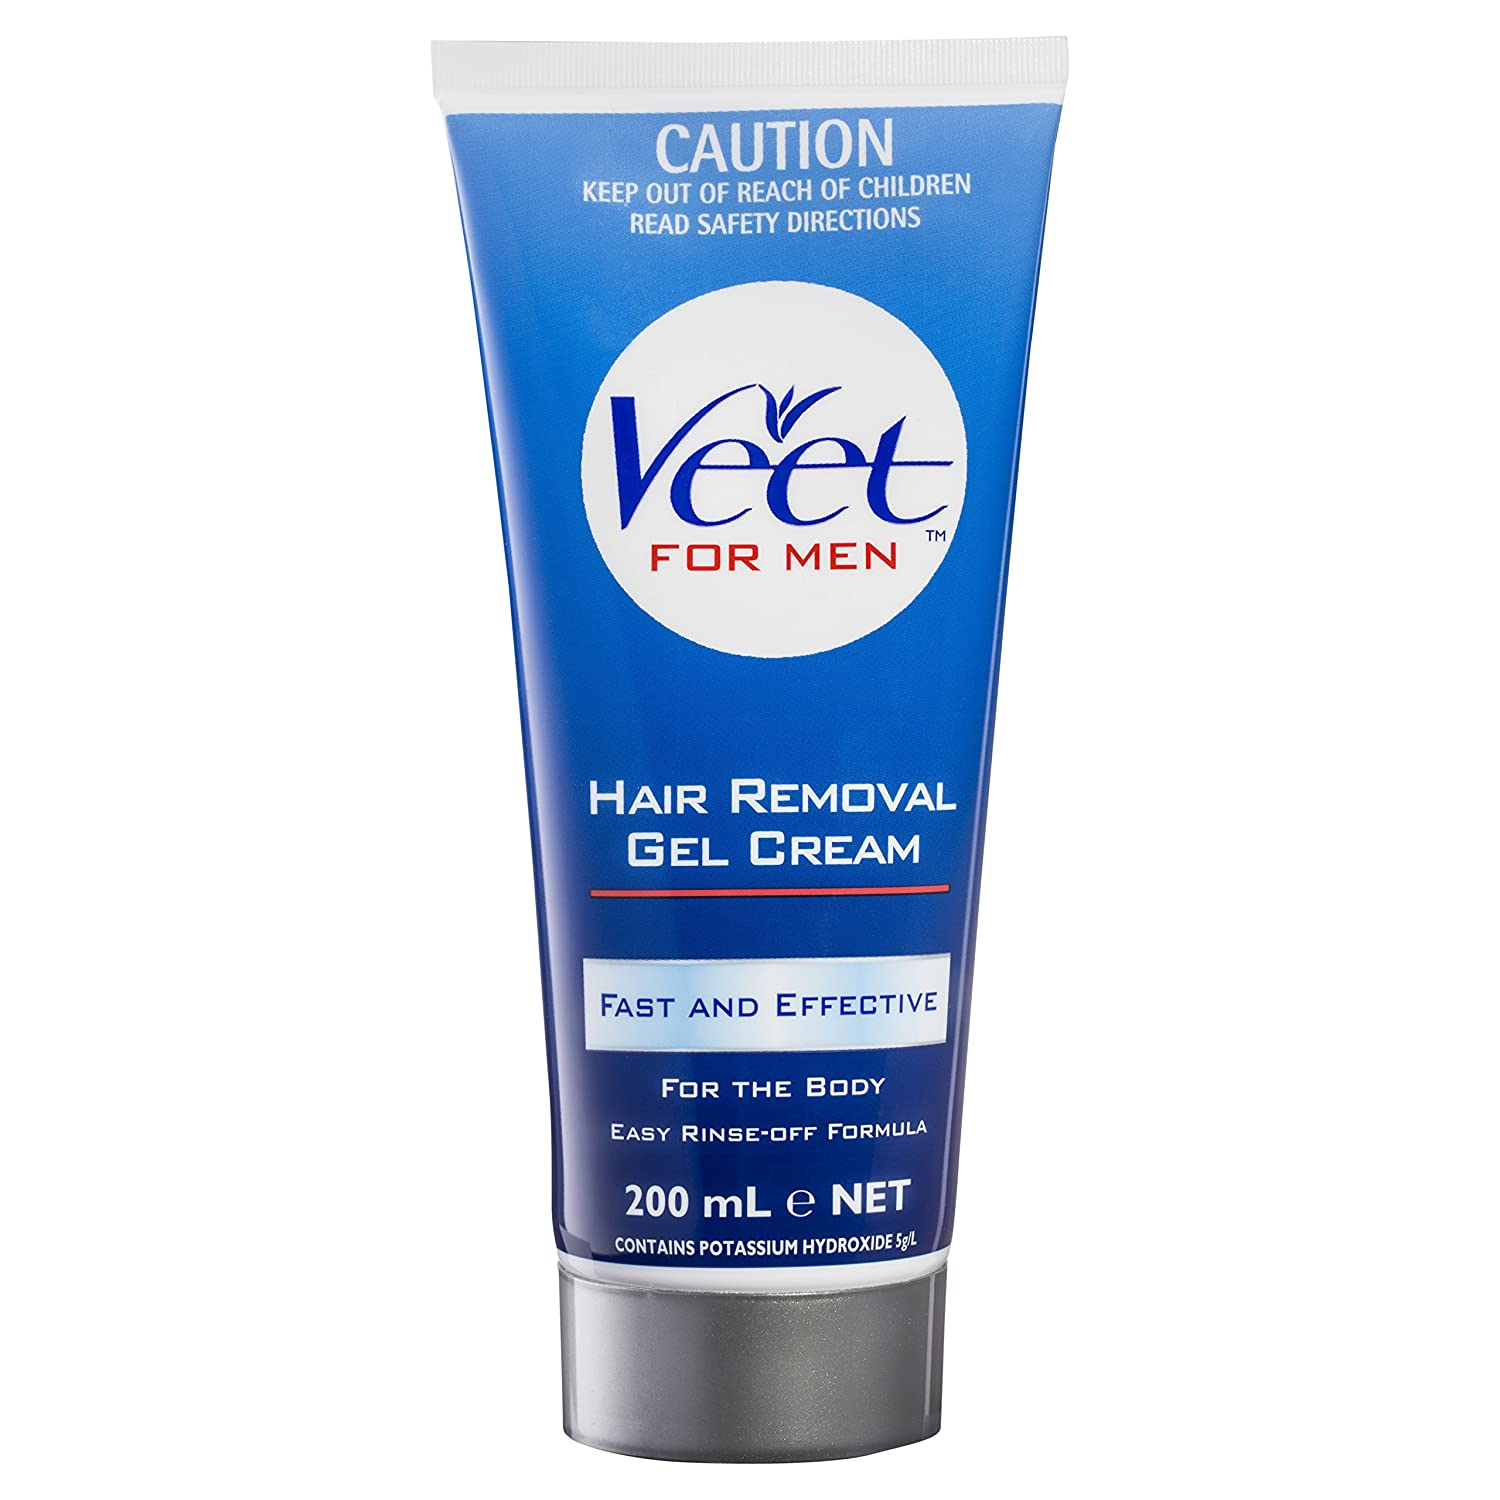 Veet for Men Crema Depilatoria para hombre - Piel normal 200ml: Amazon.es: Salud y cuidado personal